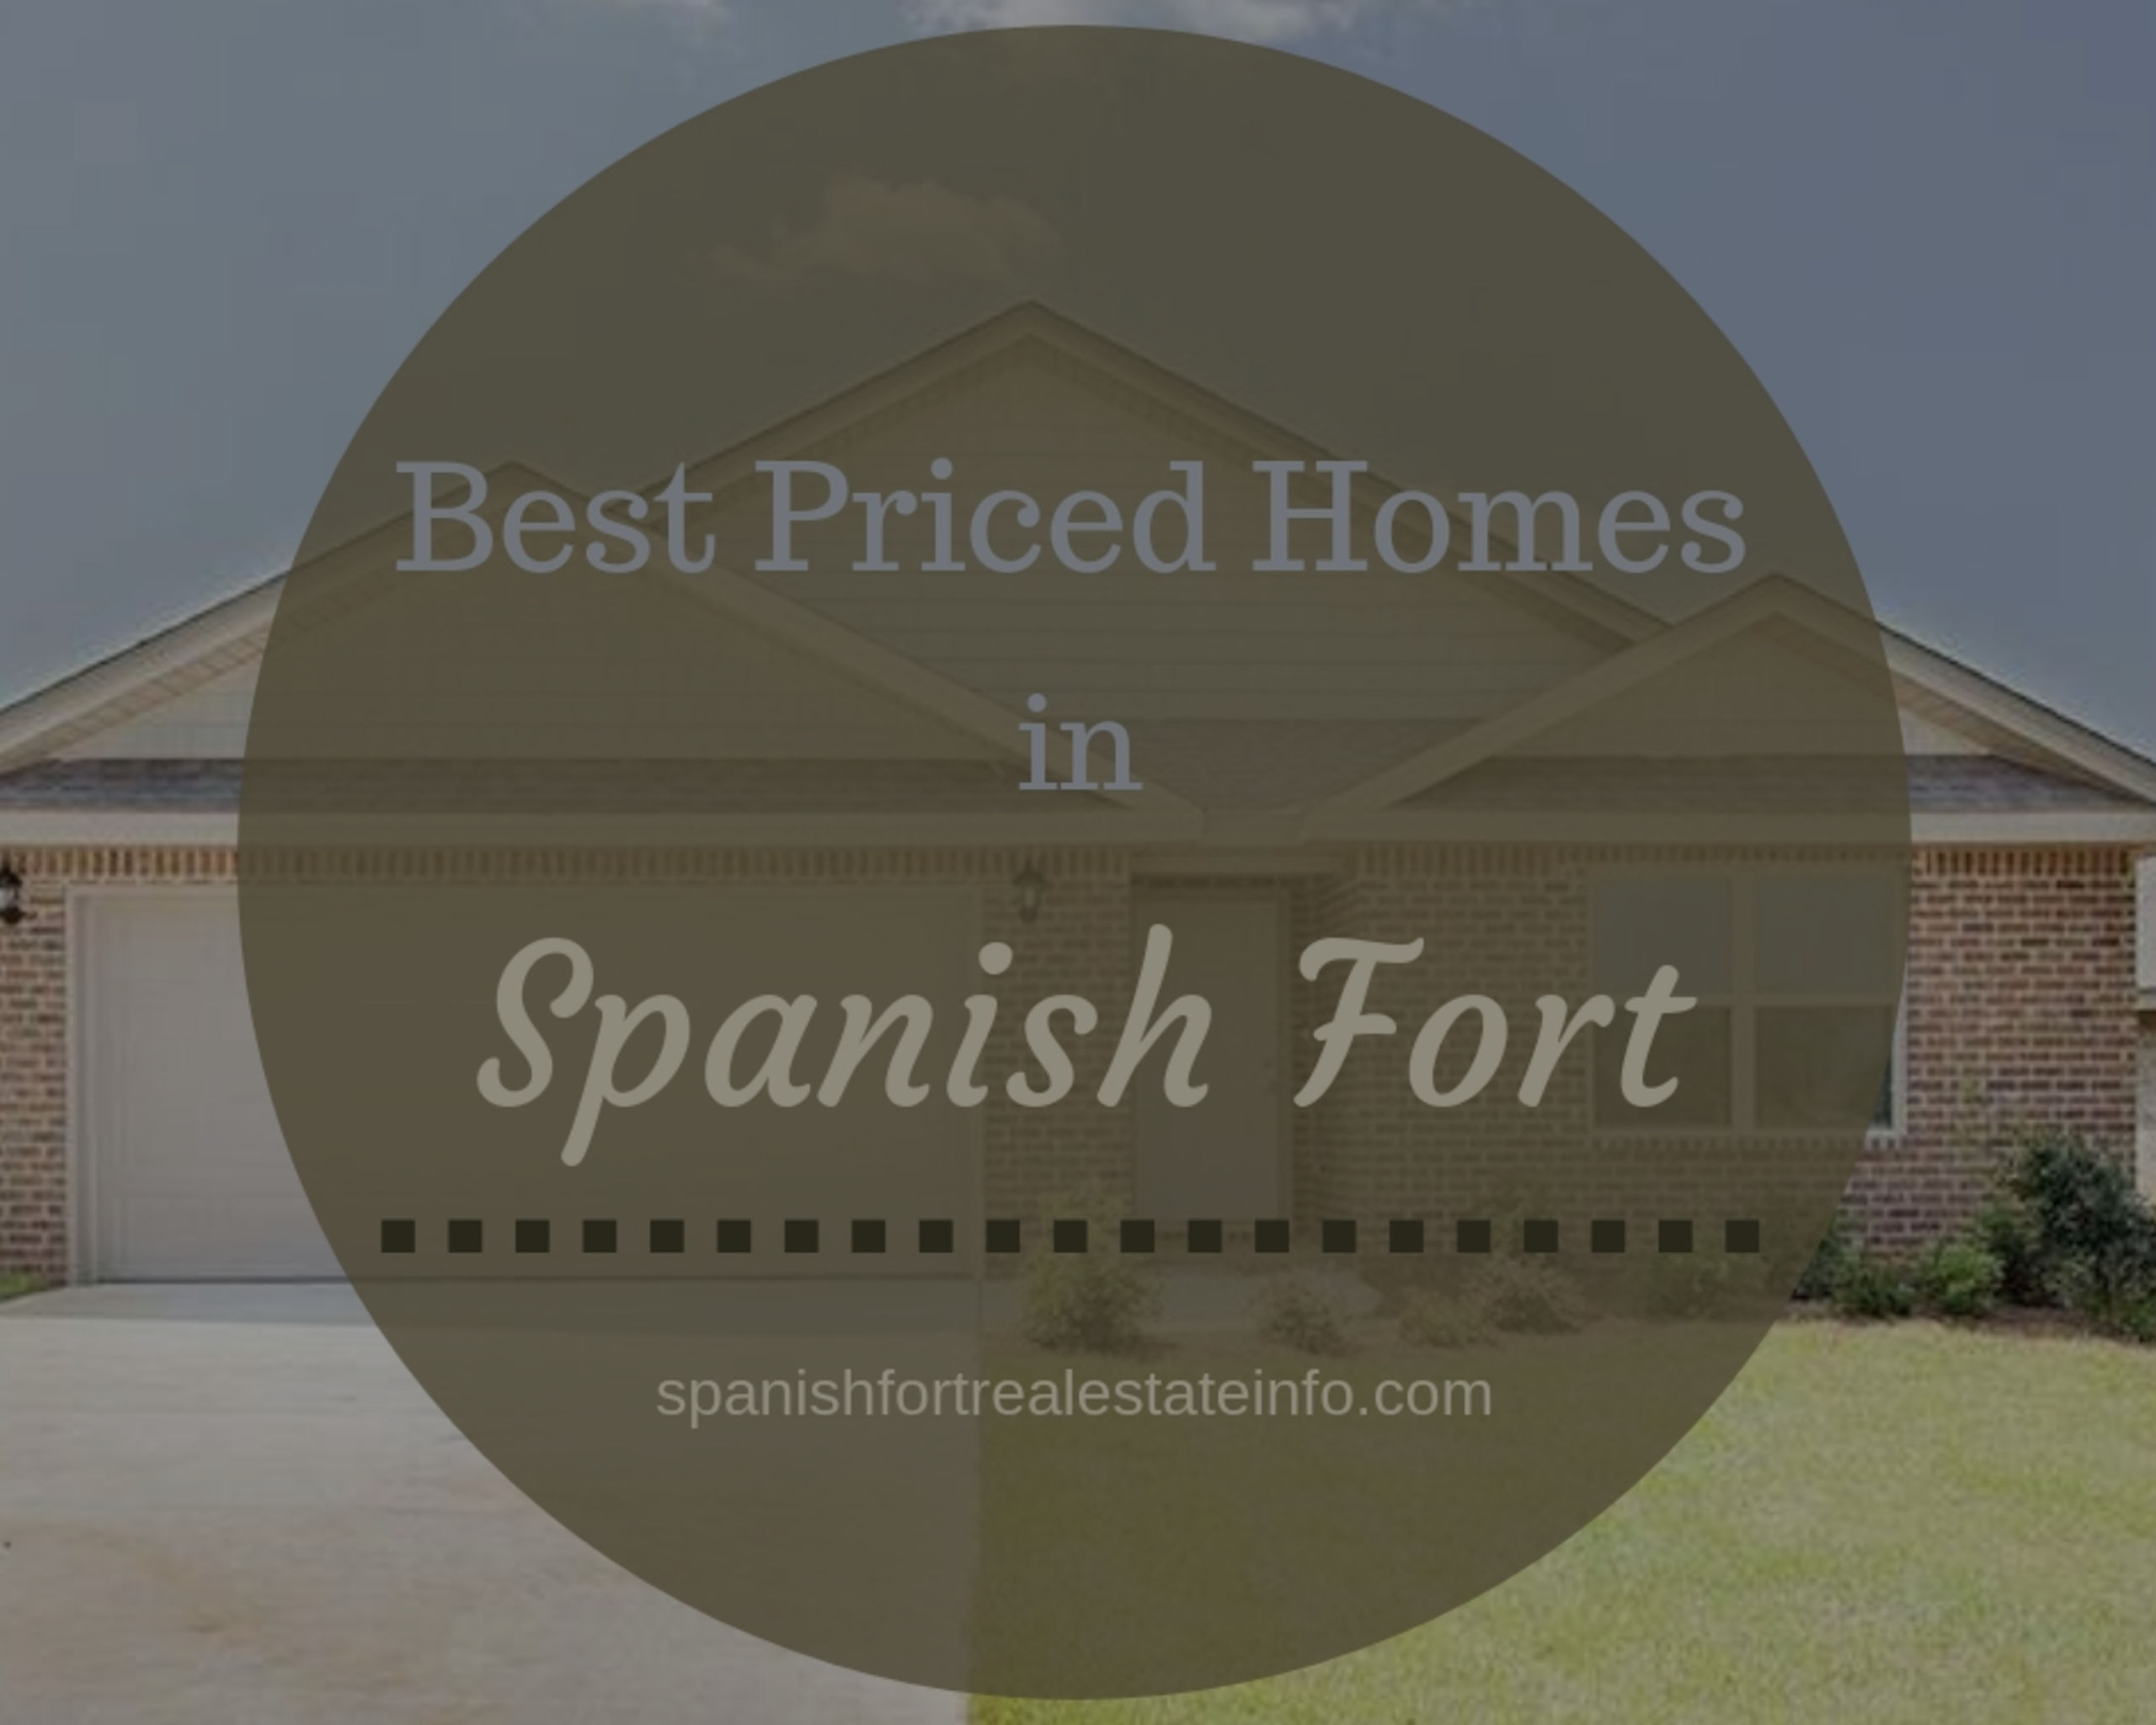 Best Priced Homes in Spanish Fort – May 2019